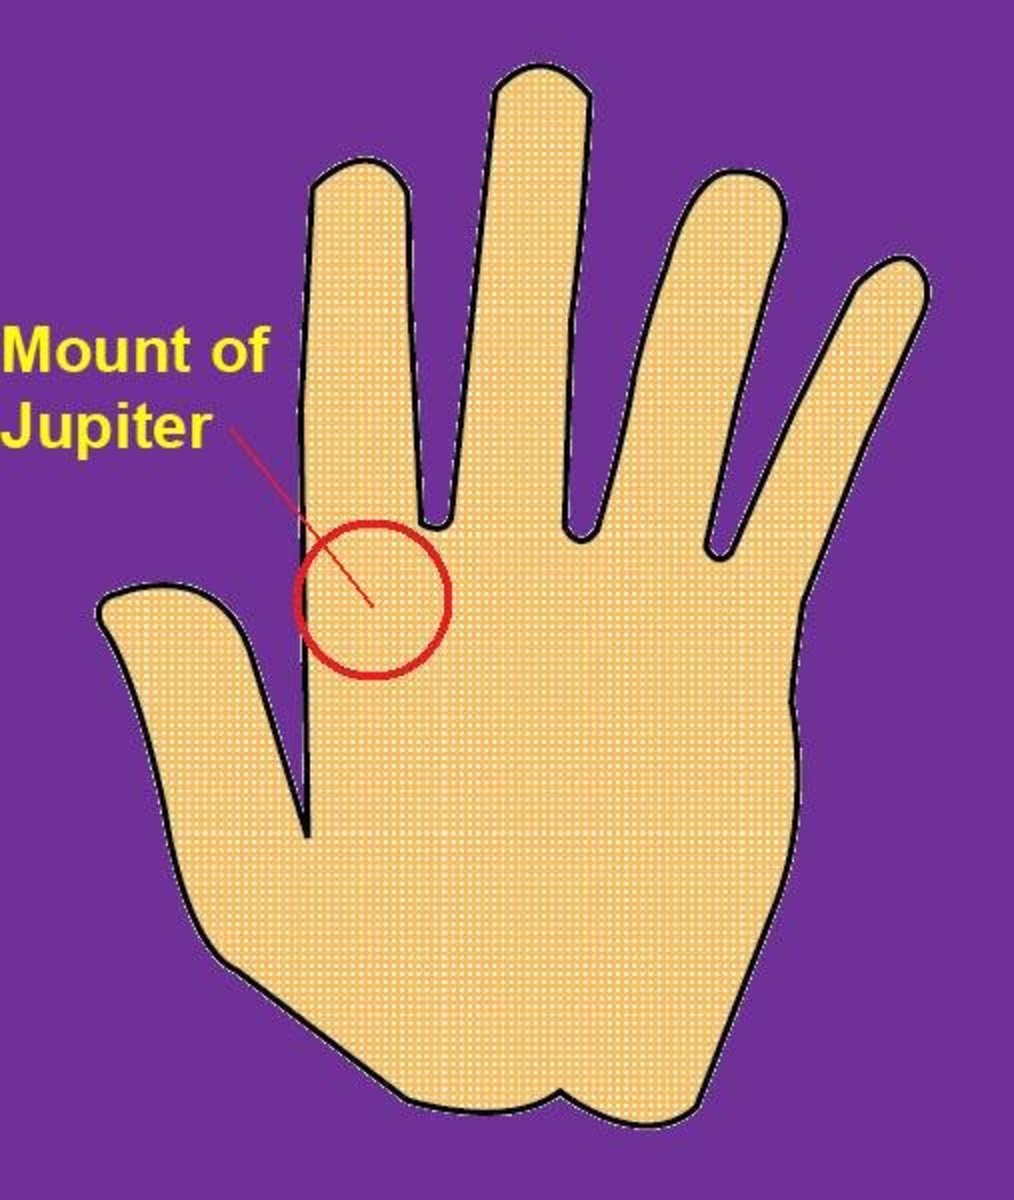 Mount of Jupiter on the Palm